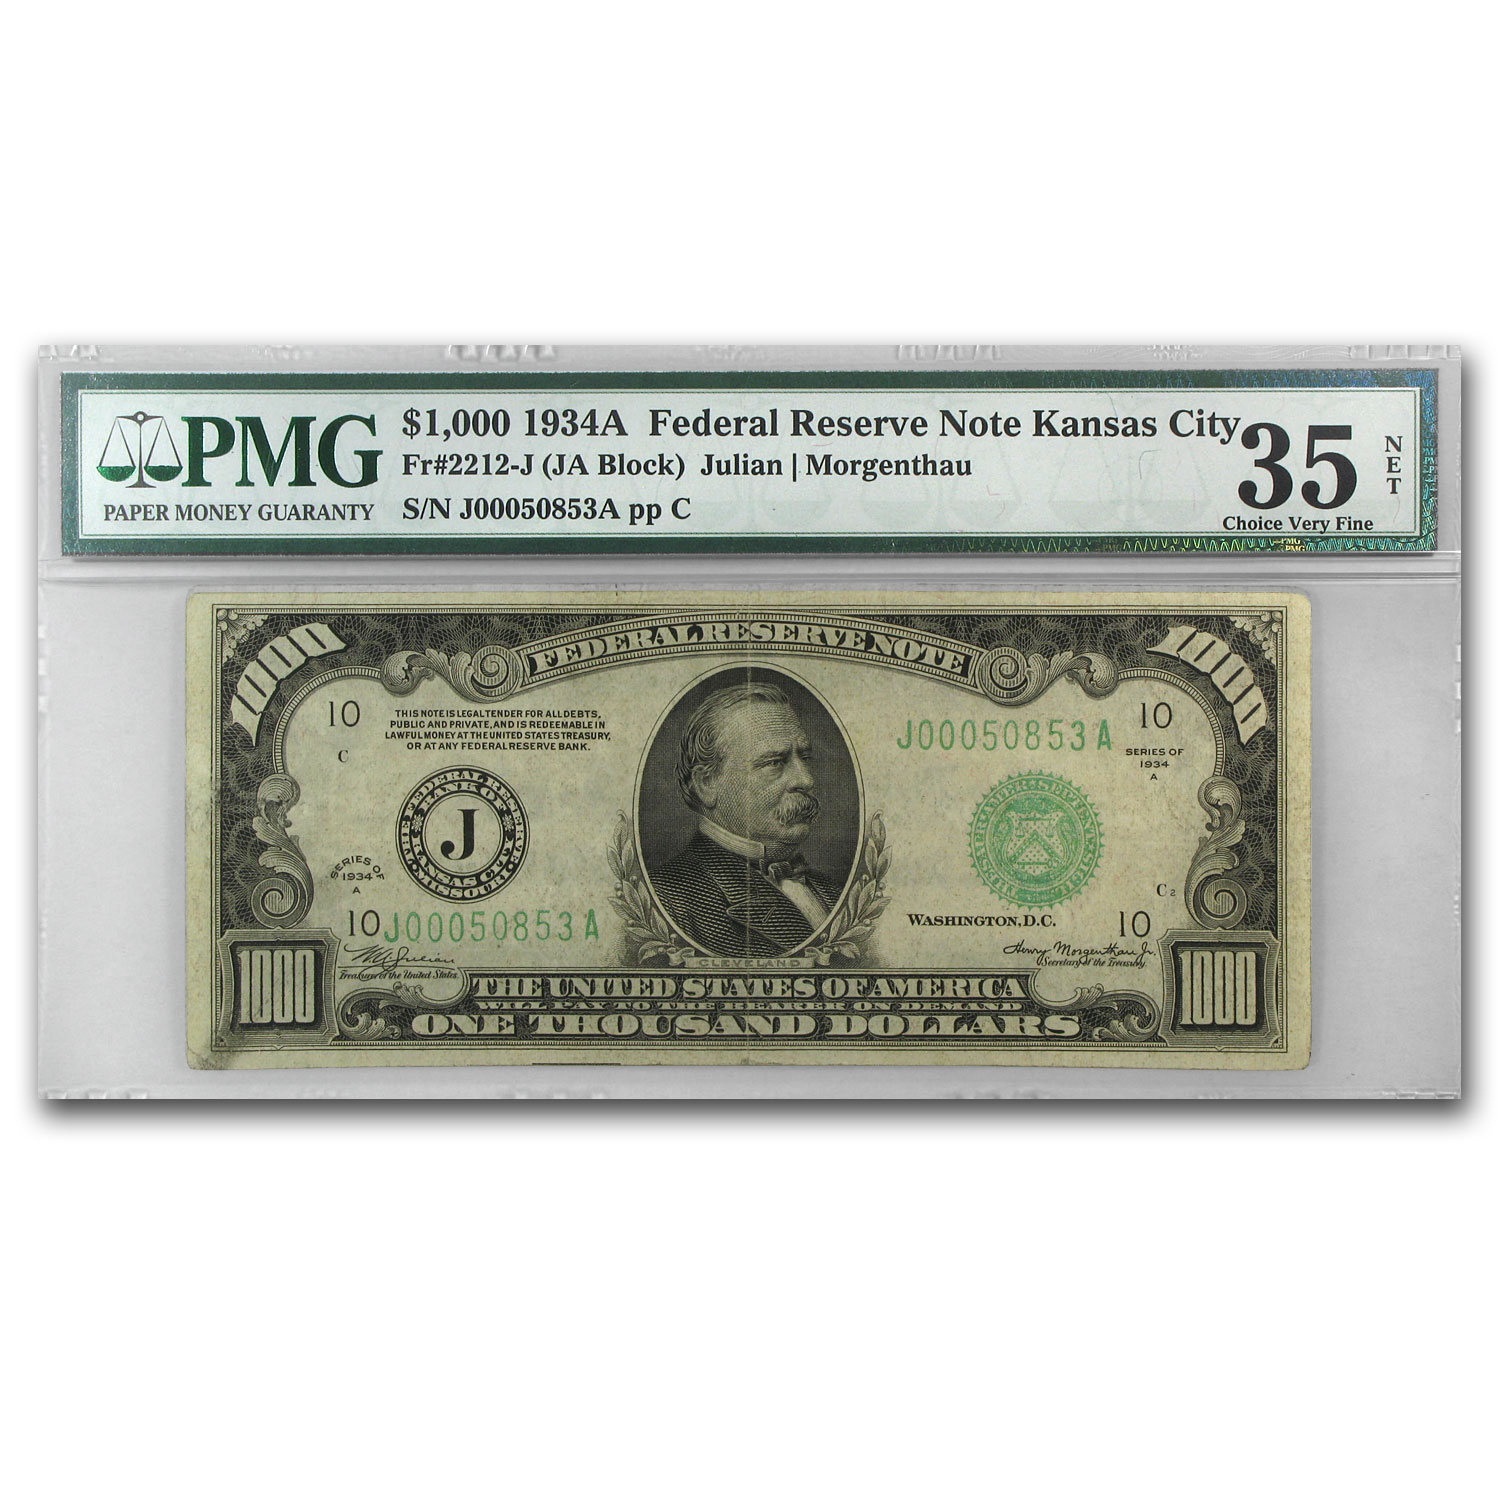 1934-A (J-Kansas City) $1,000 FRN VF-35 Net PMG